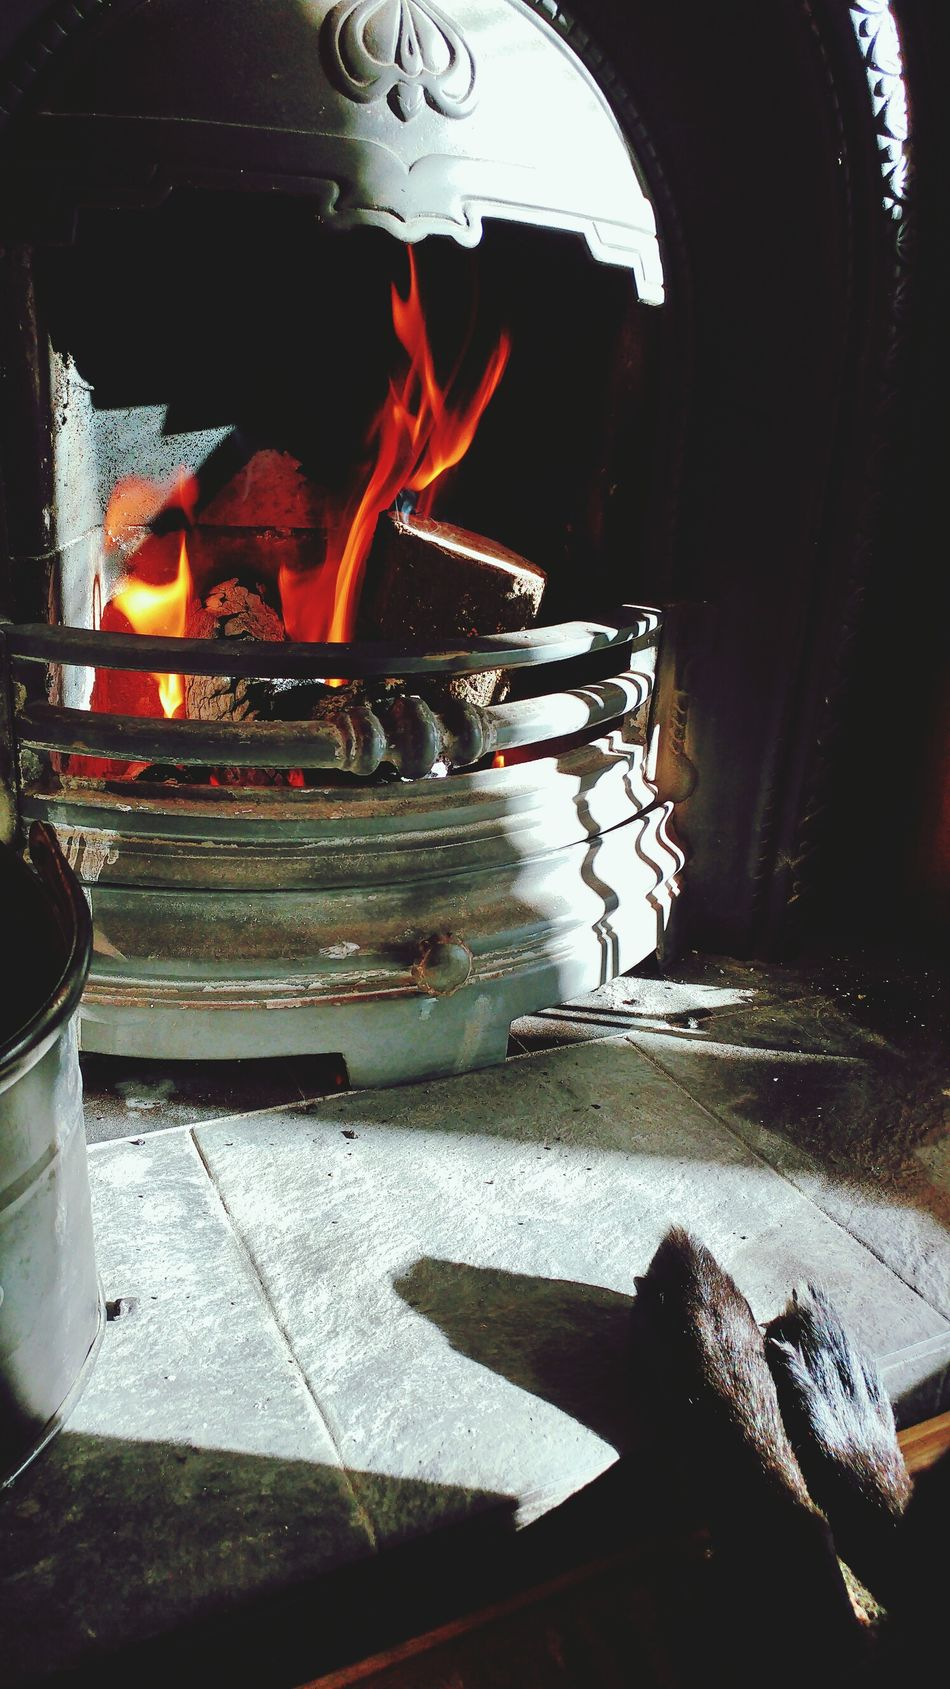 Heat - Temperature No People Close-up Indoors  Fire Fireplace Paws Dog Feet Relaxing Relaxing Moments Sunday Lazysunday